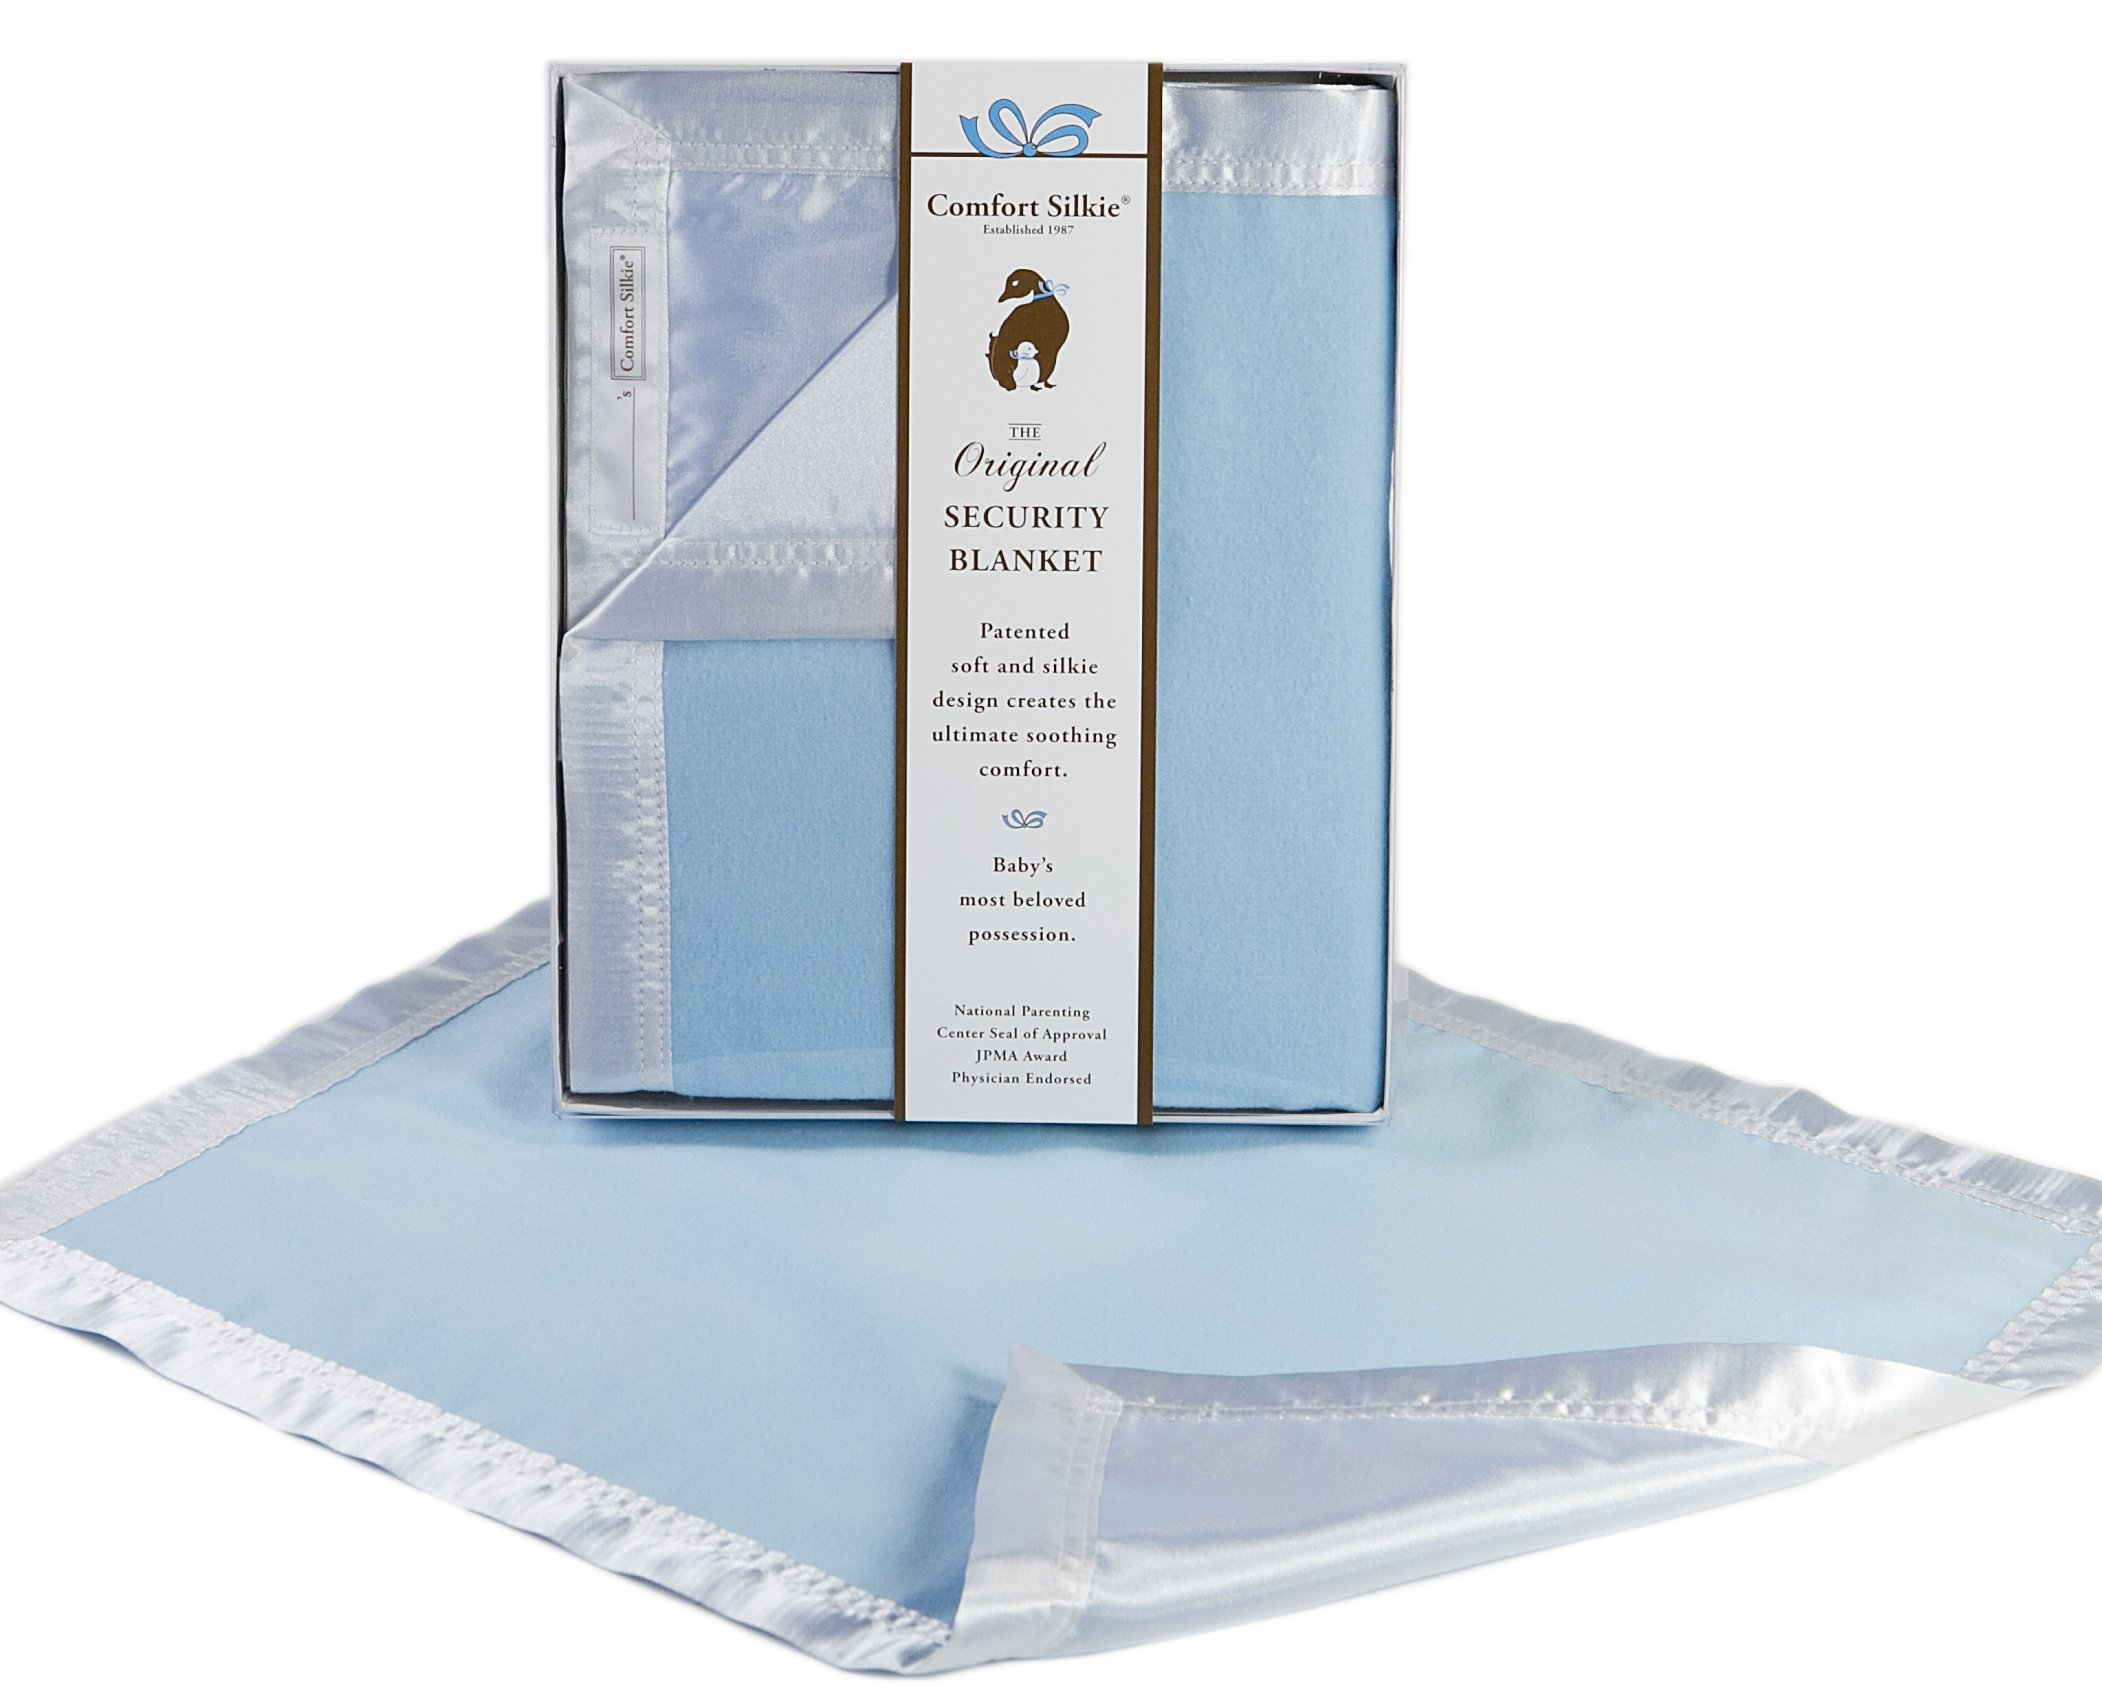 Blue COMFORT SILKIE Security Blanket ~ The Original. The Best. Award Winning.